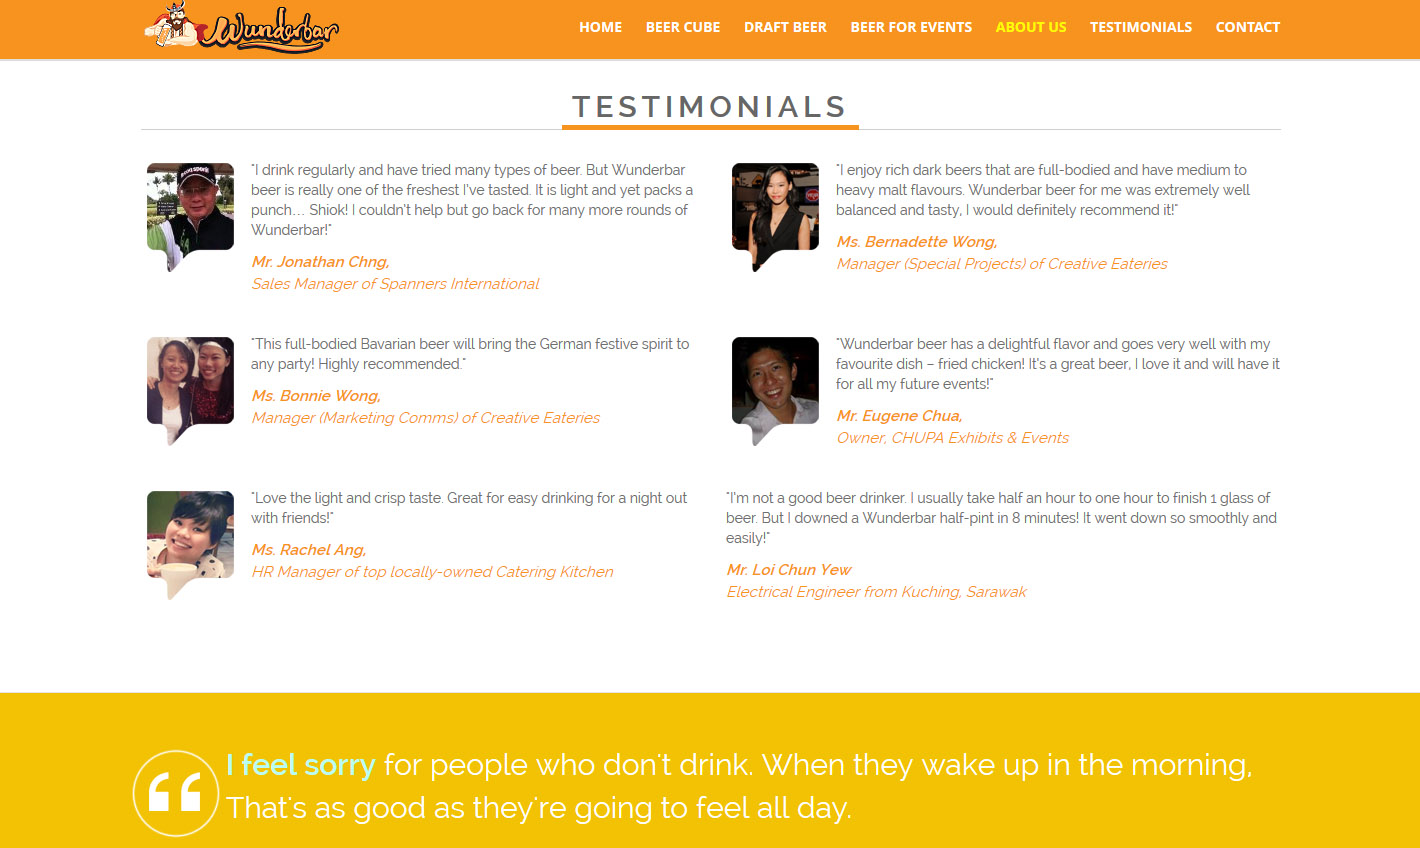 singaporefreelancecopywritertestimonialswebsitedesign.jpg